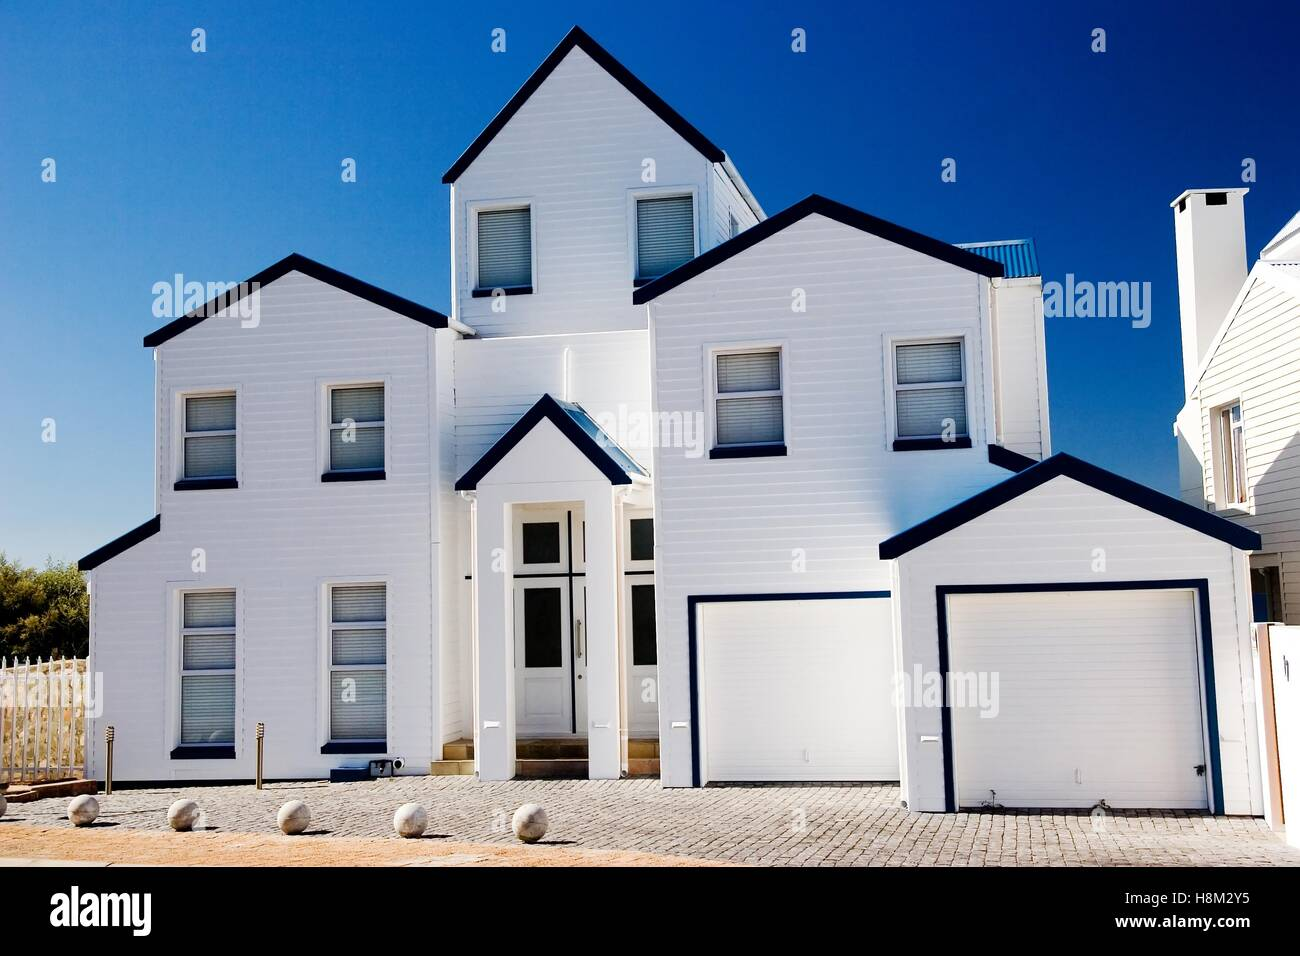 Modern Houses In South Africa Stock Photo 125831193 Alamy